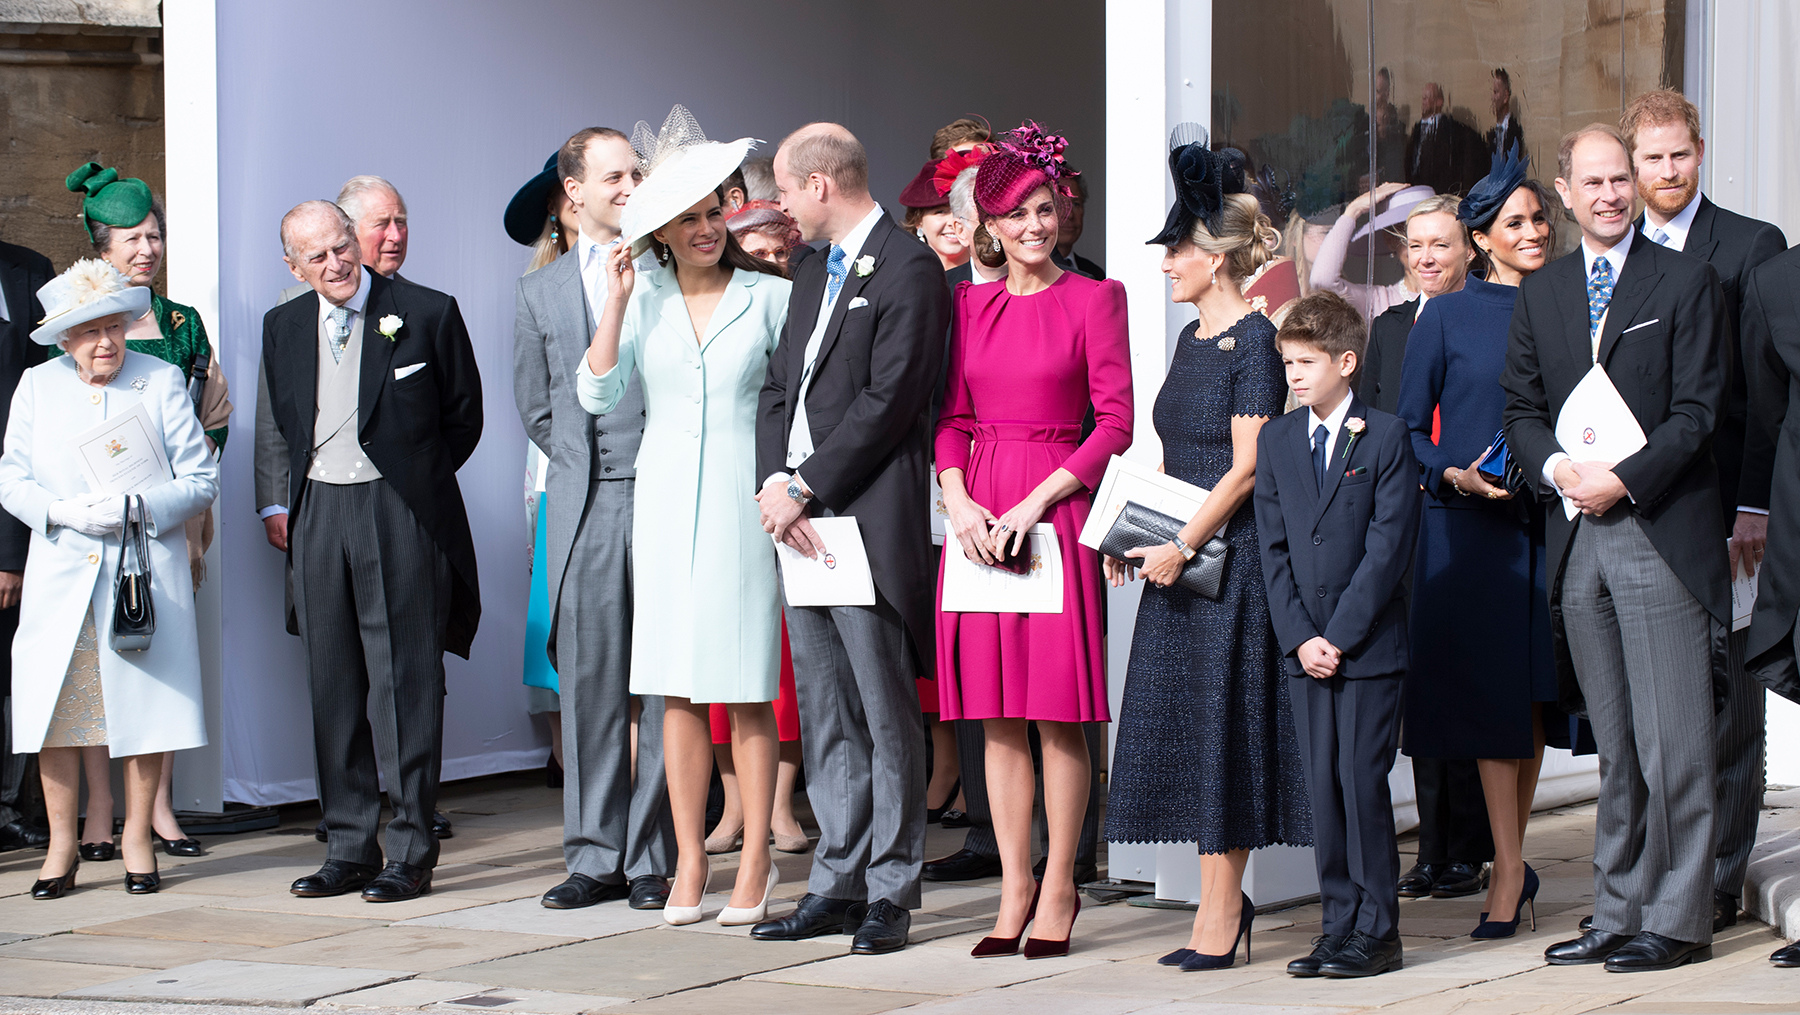 Kate Middleton and Royal Family attend the wedding of Princess Eugenie